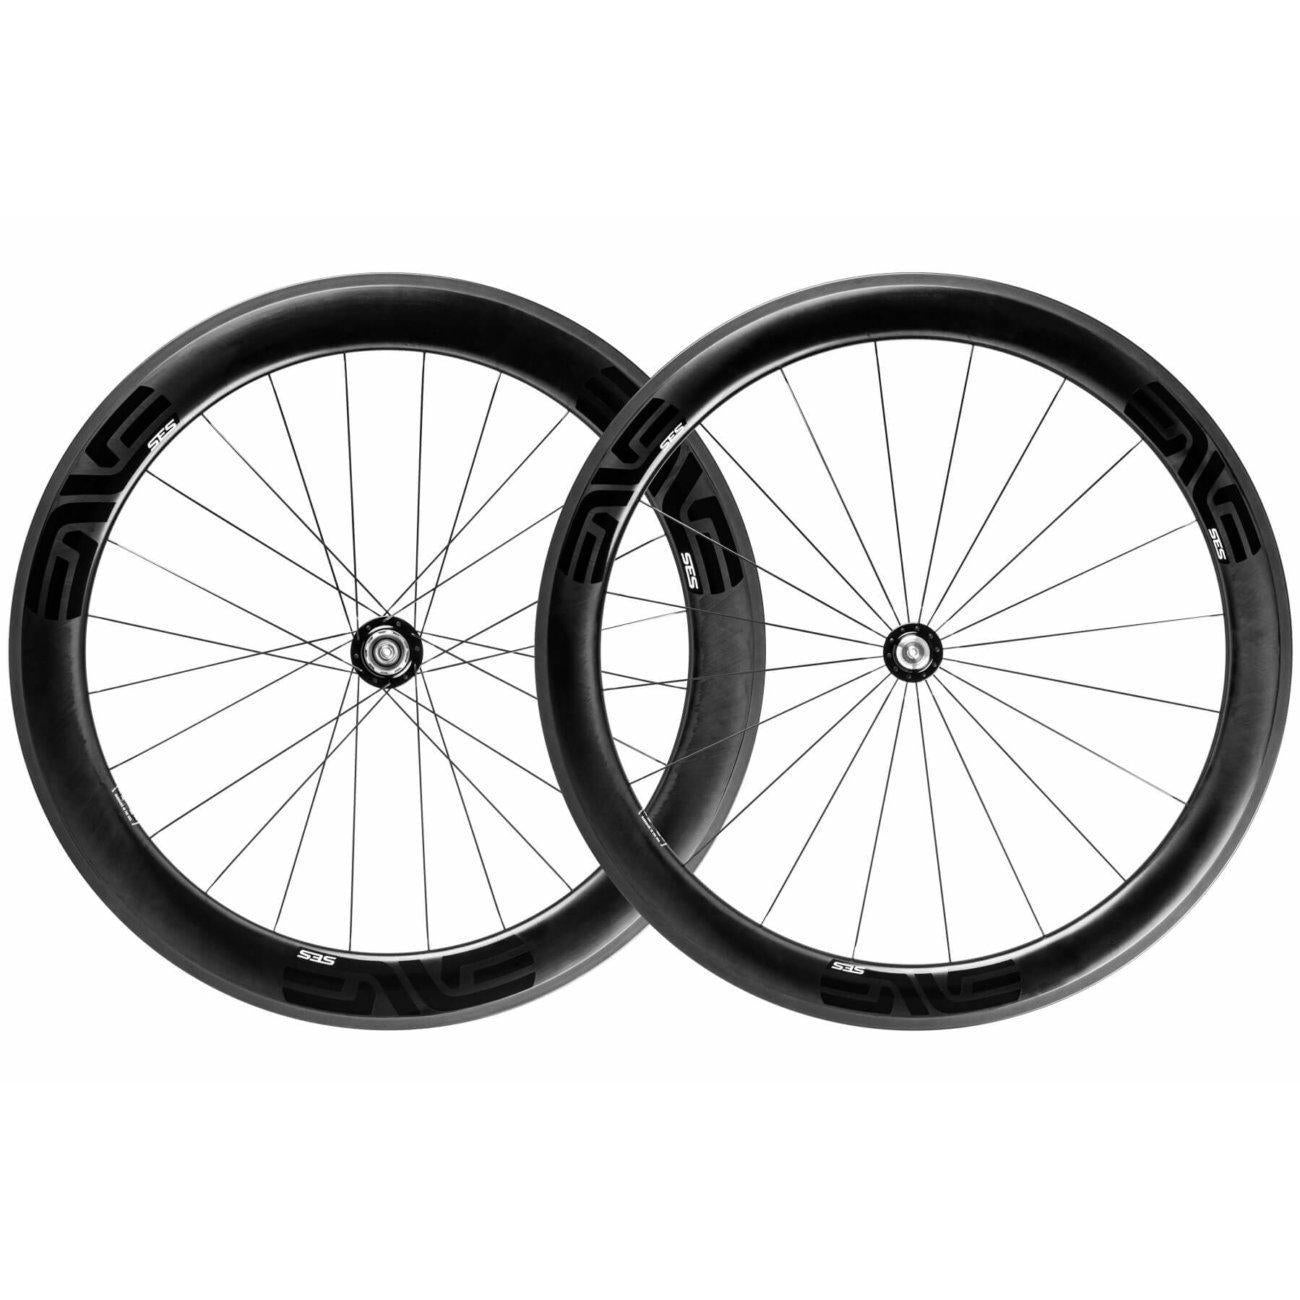 ENVE-ENVE SES 5.6 Wheelset - Chris King Hubs-Black/R45/QR-Shimano-Clincher-EN00561003109058-saddleback-elite-performance-cycling